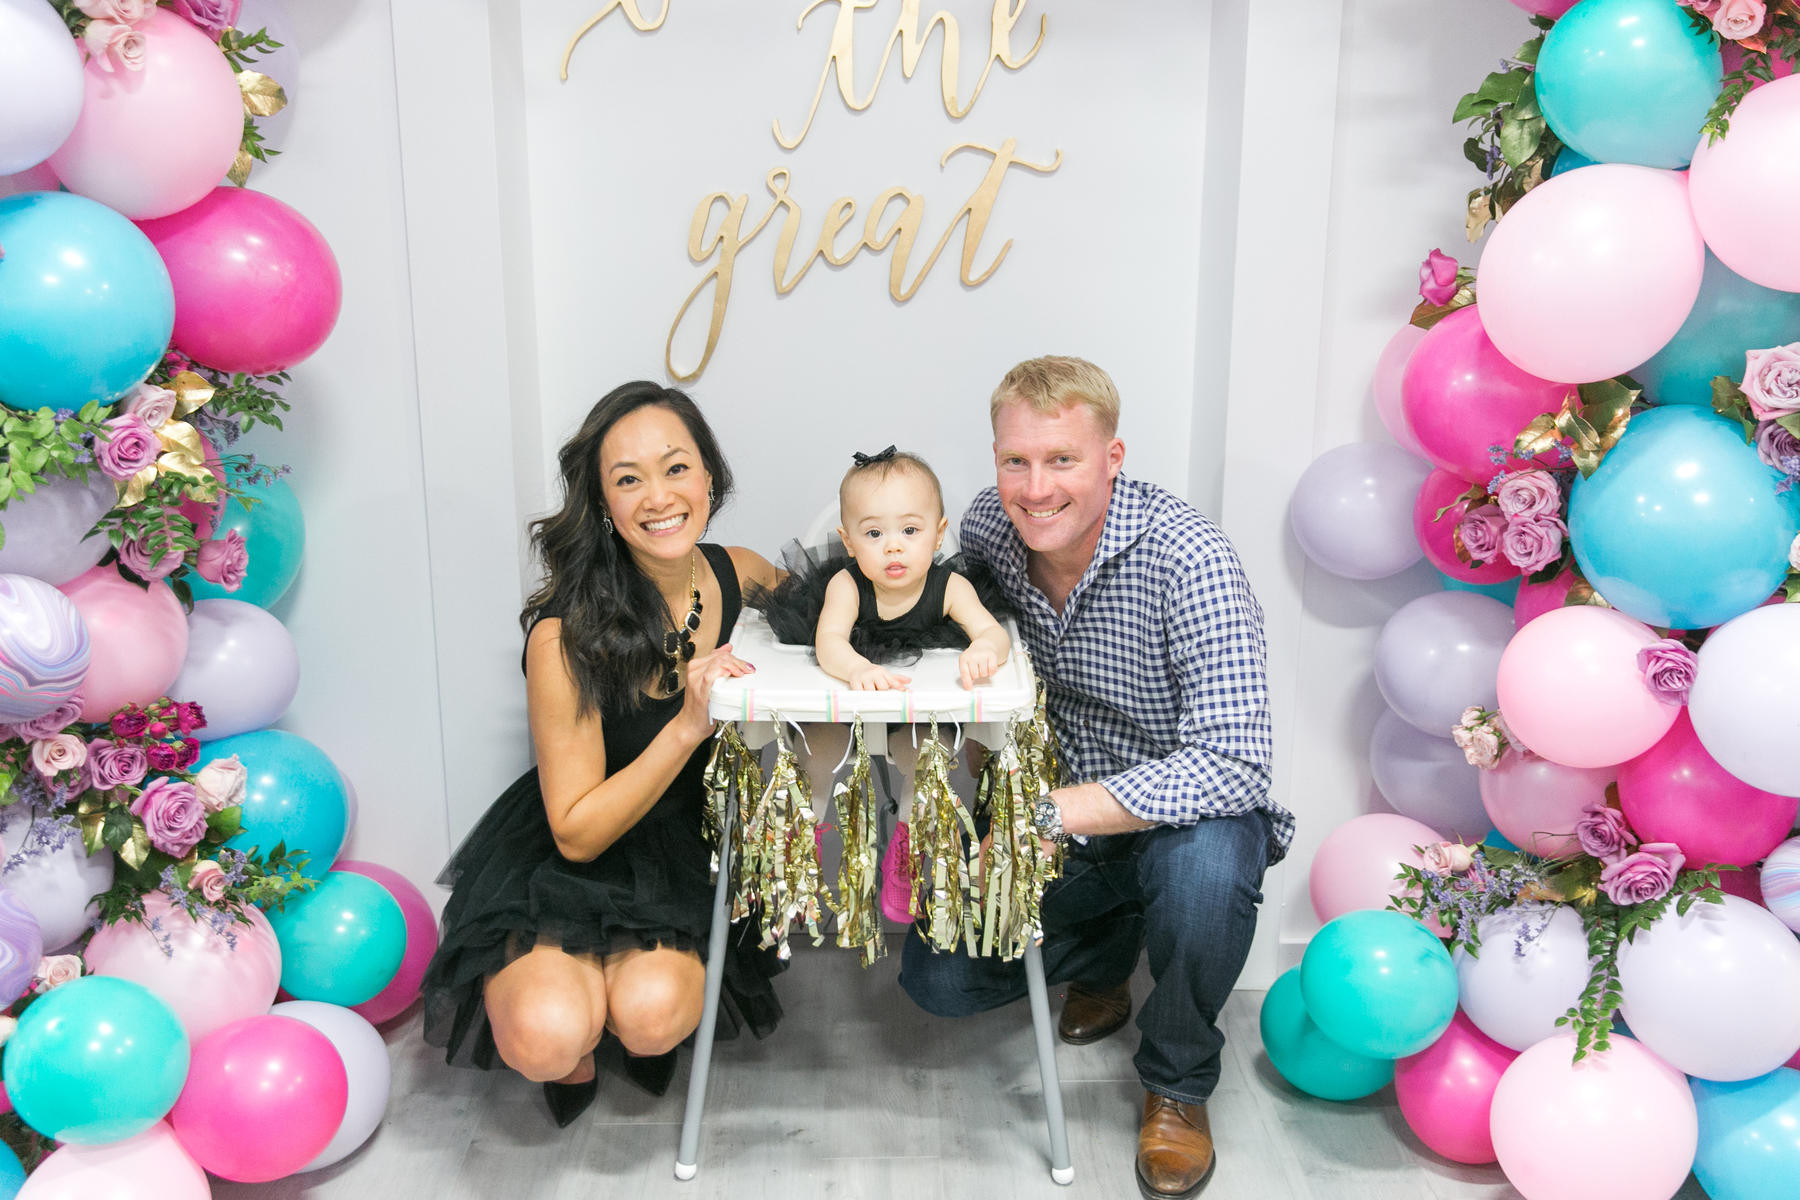 Best ideas about Baby's First Birthday Party Ideas . Save or Pin This Unicorn Themed 1st Birthday Party Is Definitely the Now.